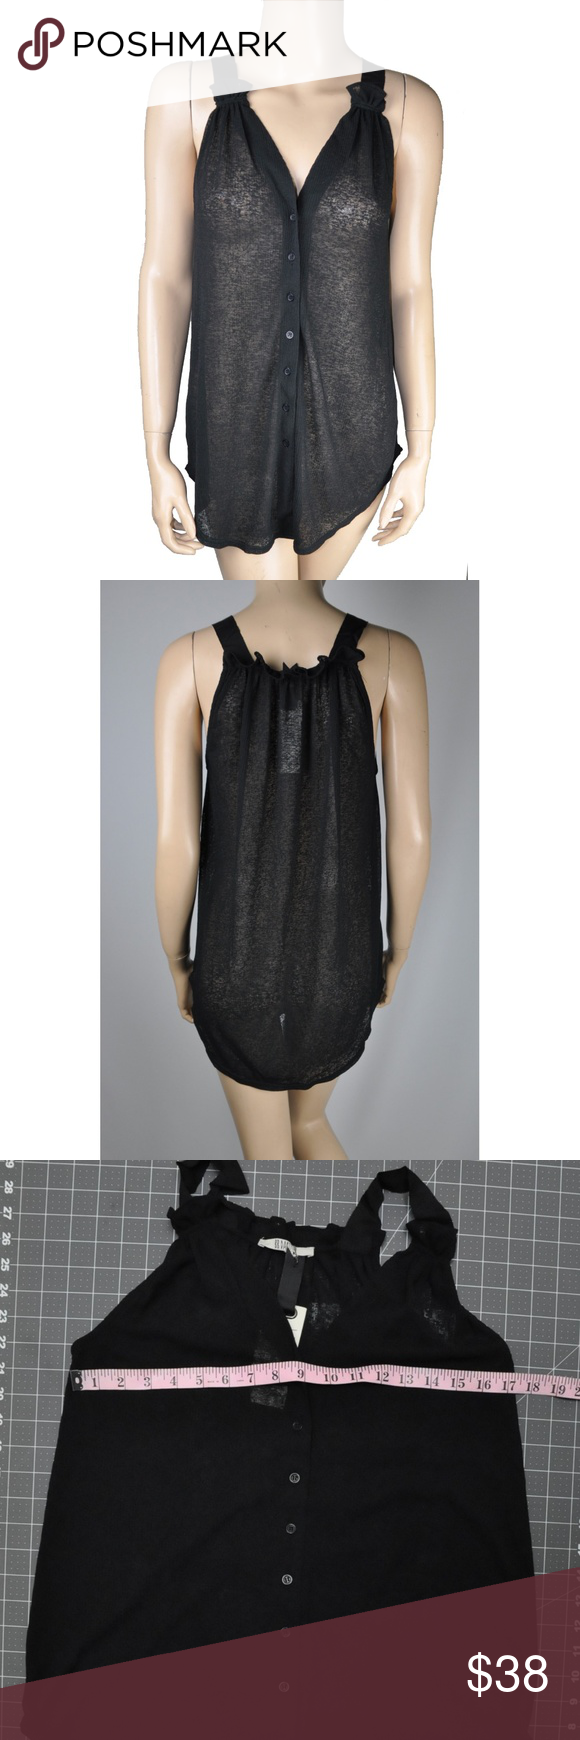 9e1a08a7ecd853 Black Sheer Transparent Button Up Tank Top Shirt Description  Black Sheer  Transparent Button Up Tank Top Shirt Brand  BB Dakota Size  Small Color   Black ...